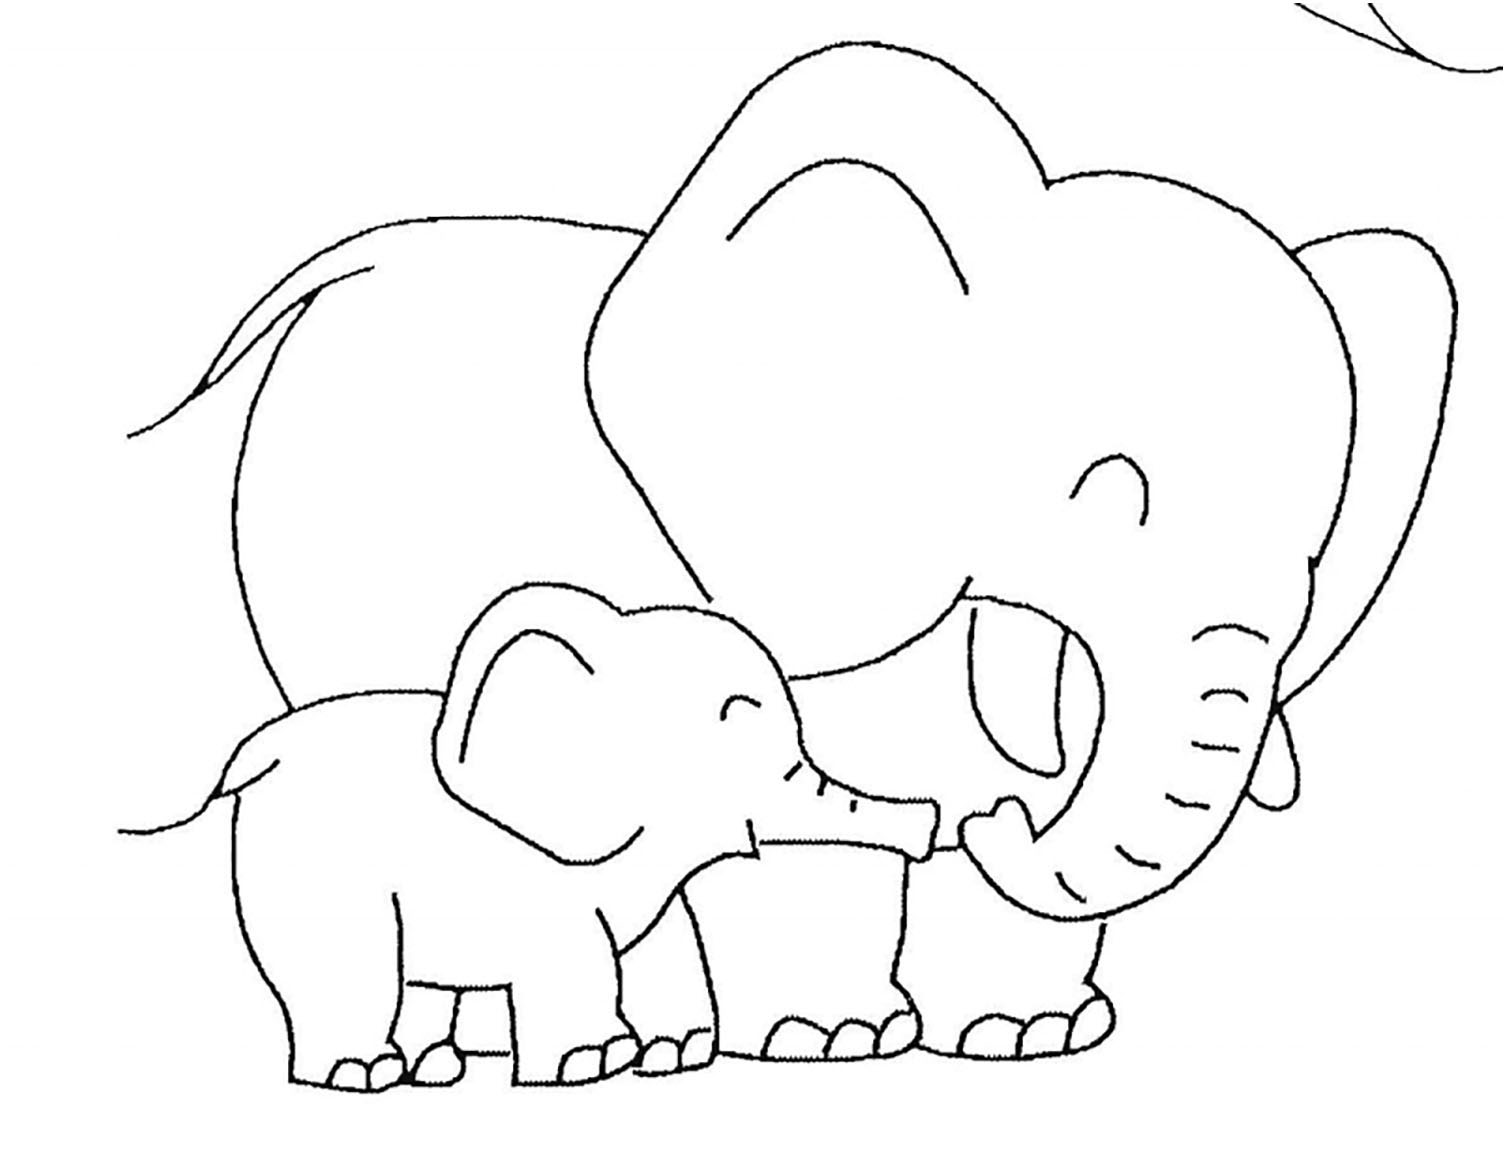 colouring picture of elephant elephants free to color for kids elephants kids coloring colouring of elephant picture